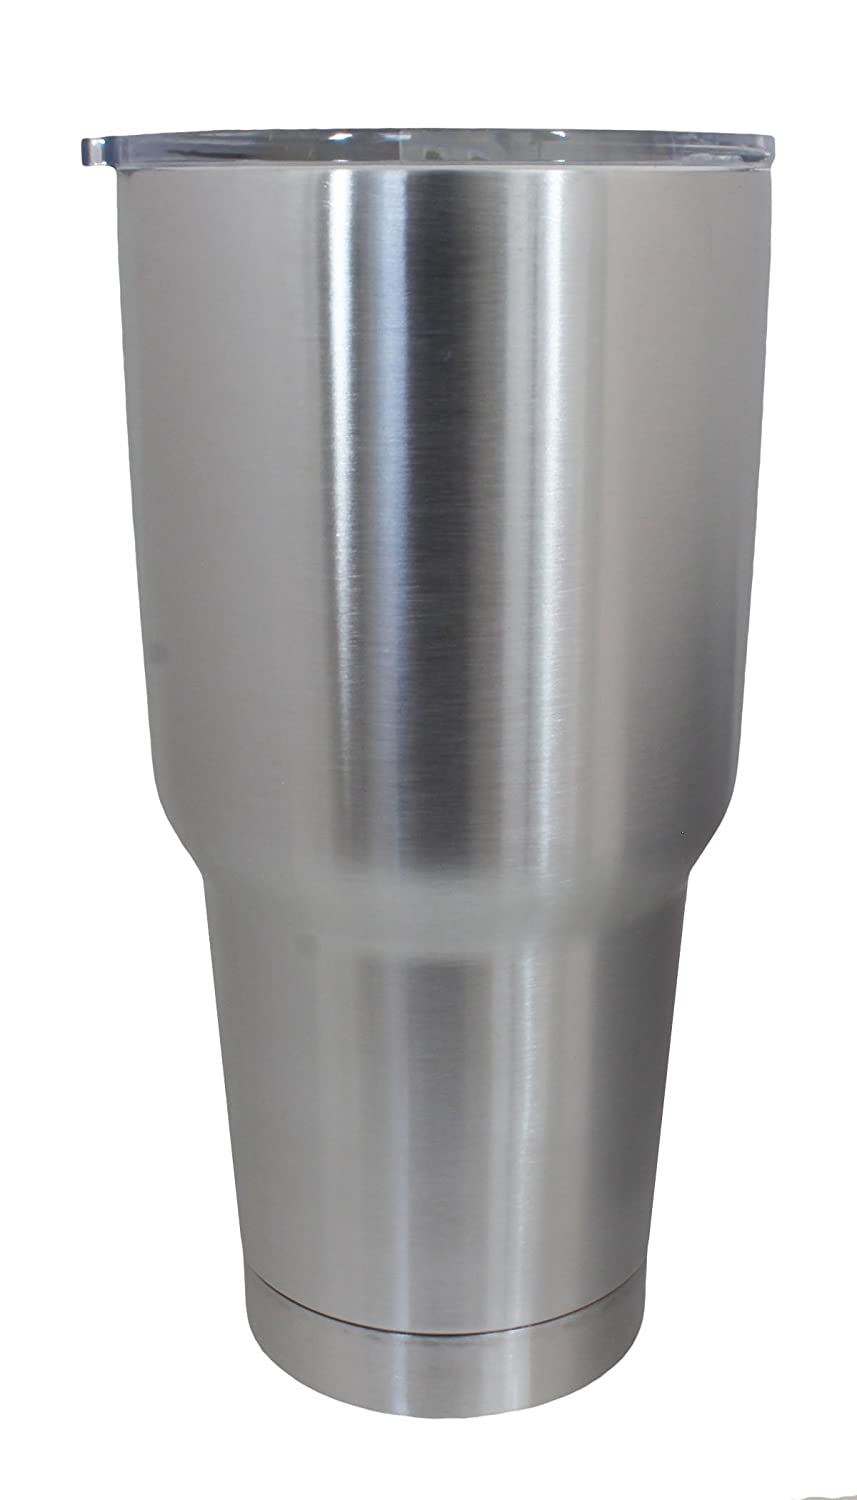 amazoncom the boss vacuum insulated stainless steel travel  - amazoncom the boss vacuum insulated stainless steel travel tumbler oz kitchen  dining